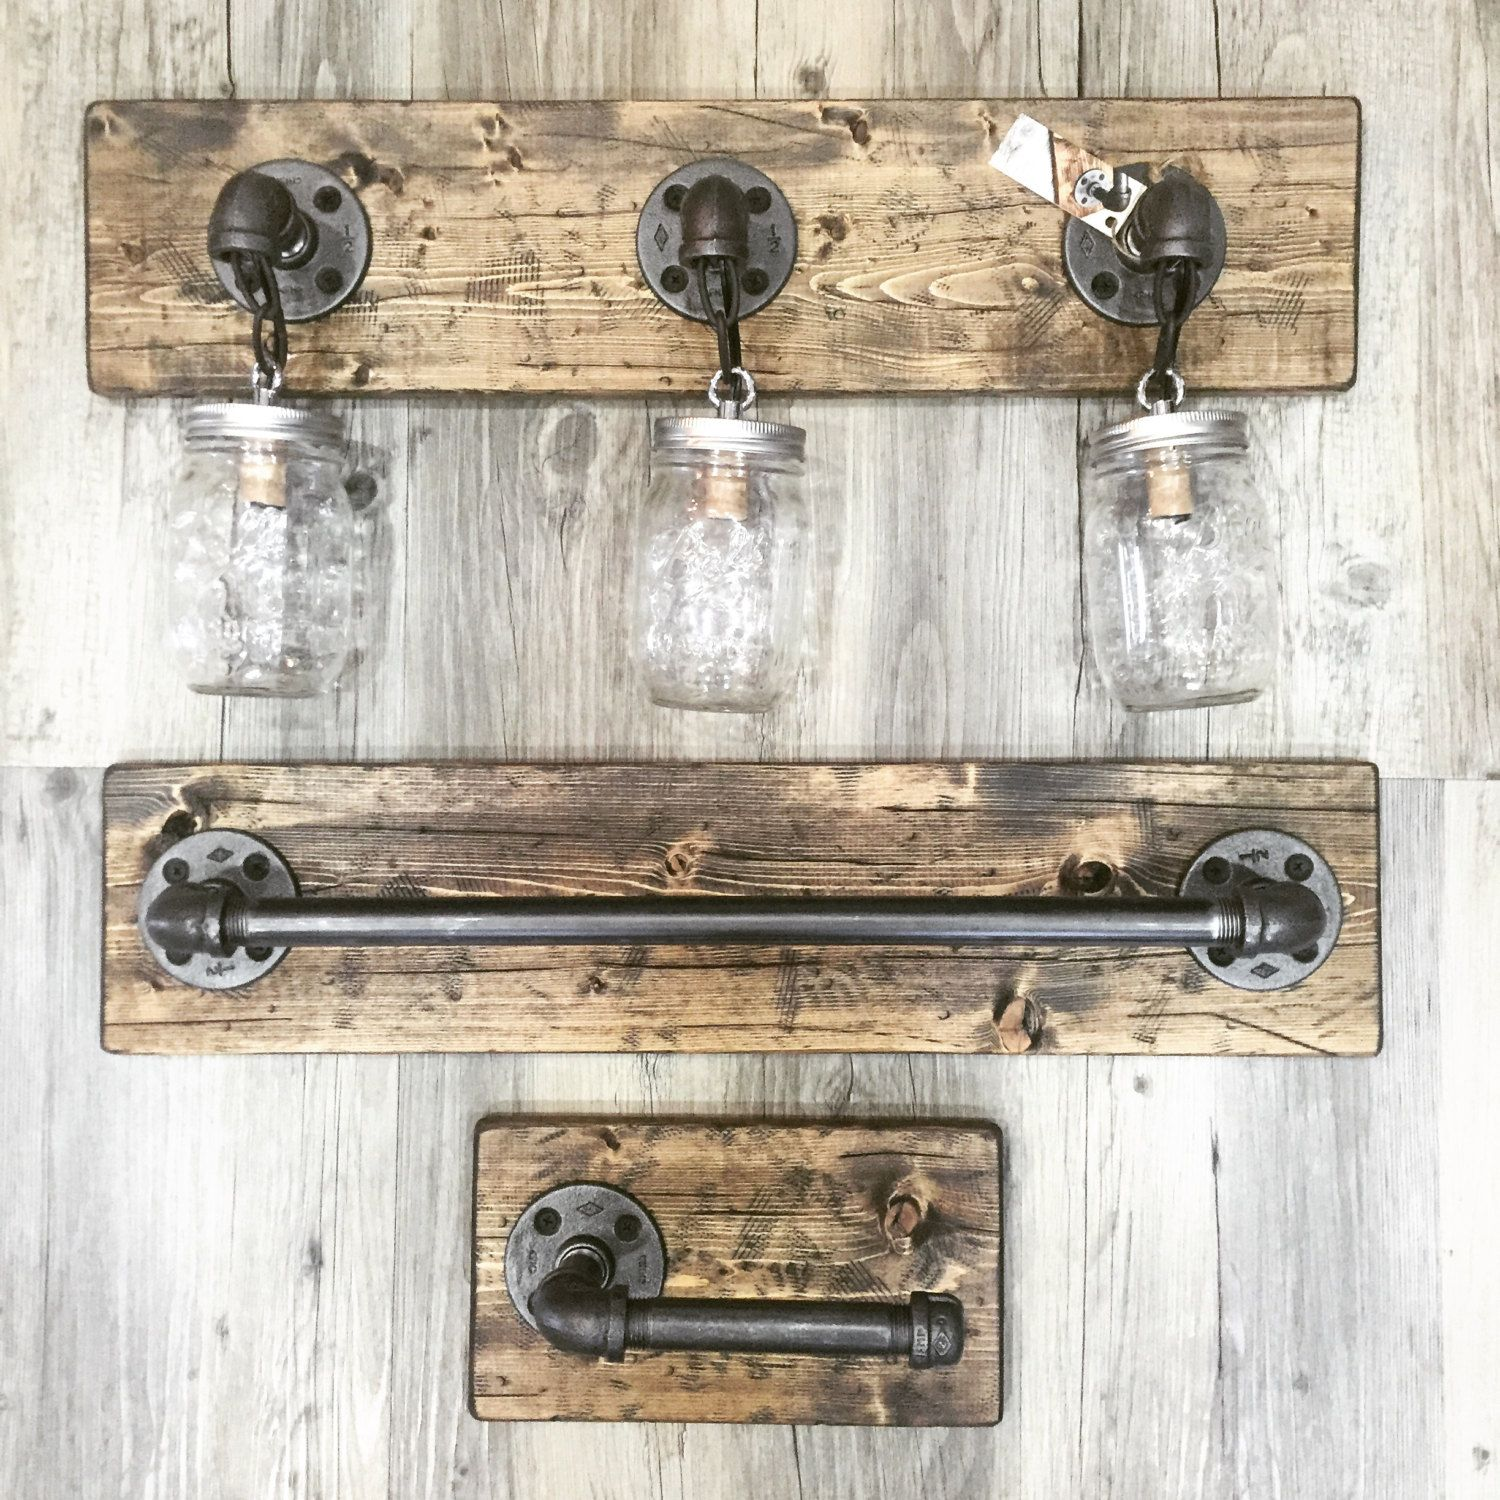 Unique Bathroom Set Rustic Mason Jar Light Rustic Vanity Rustic Bathroom Lighting Rustic Bathroom Decor Mason Jar Light Fixture